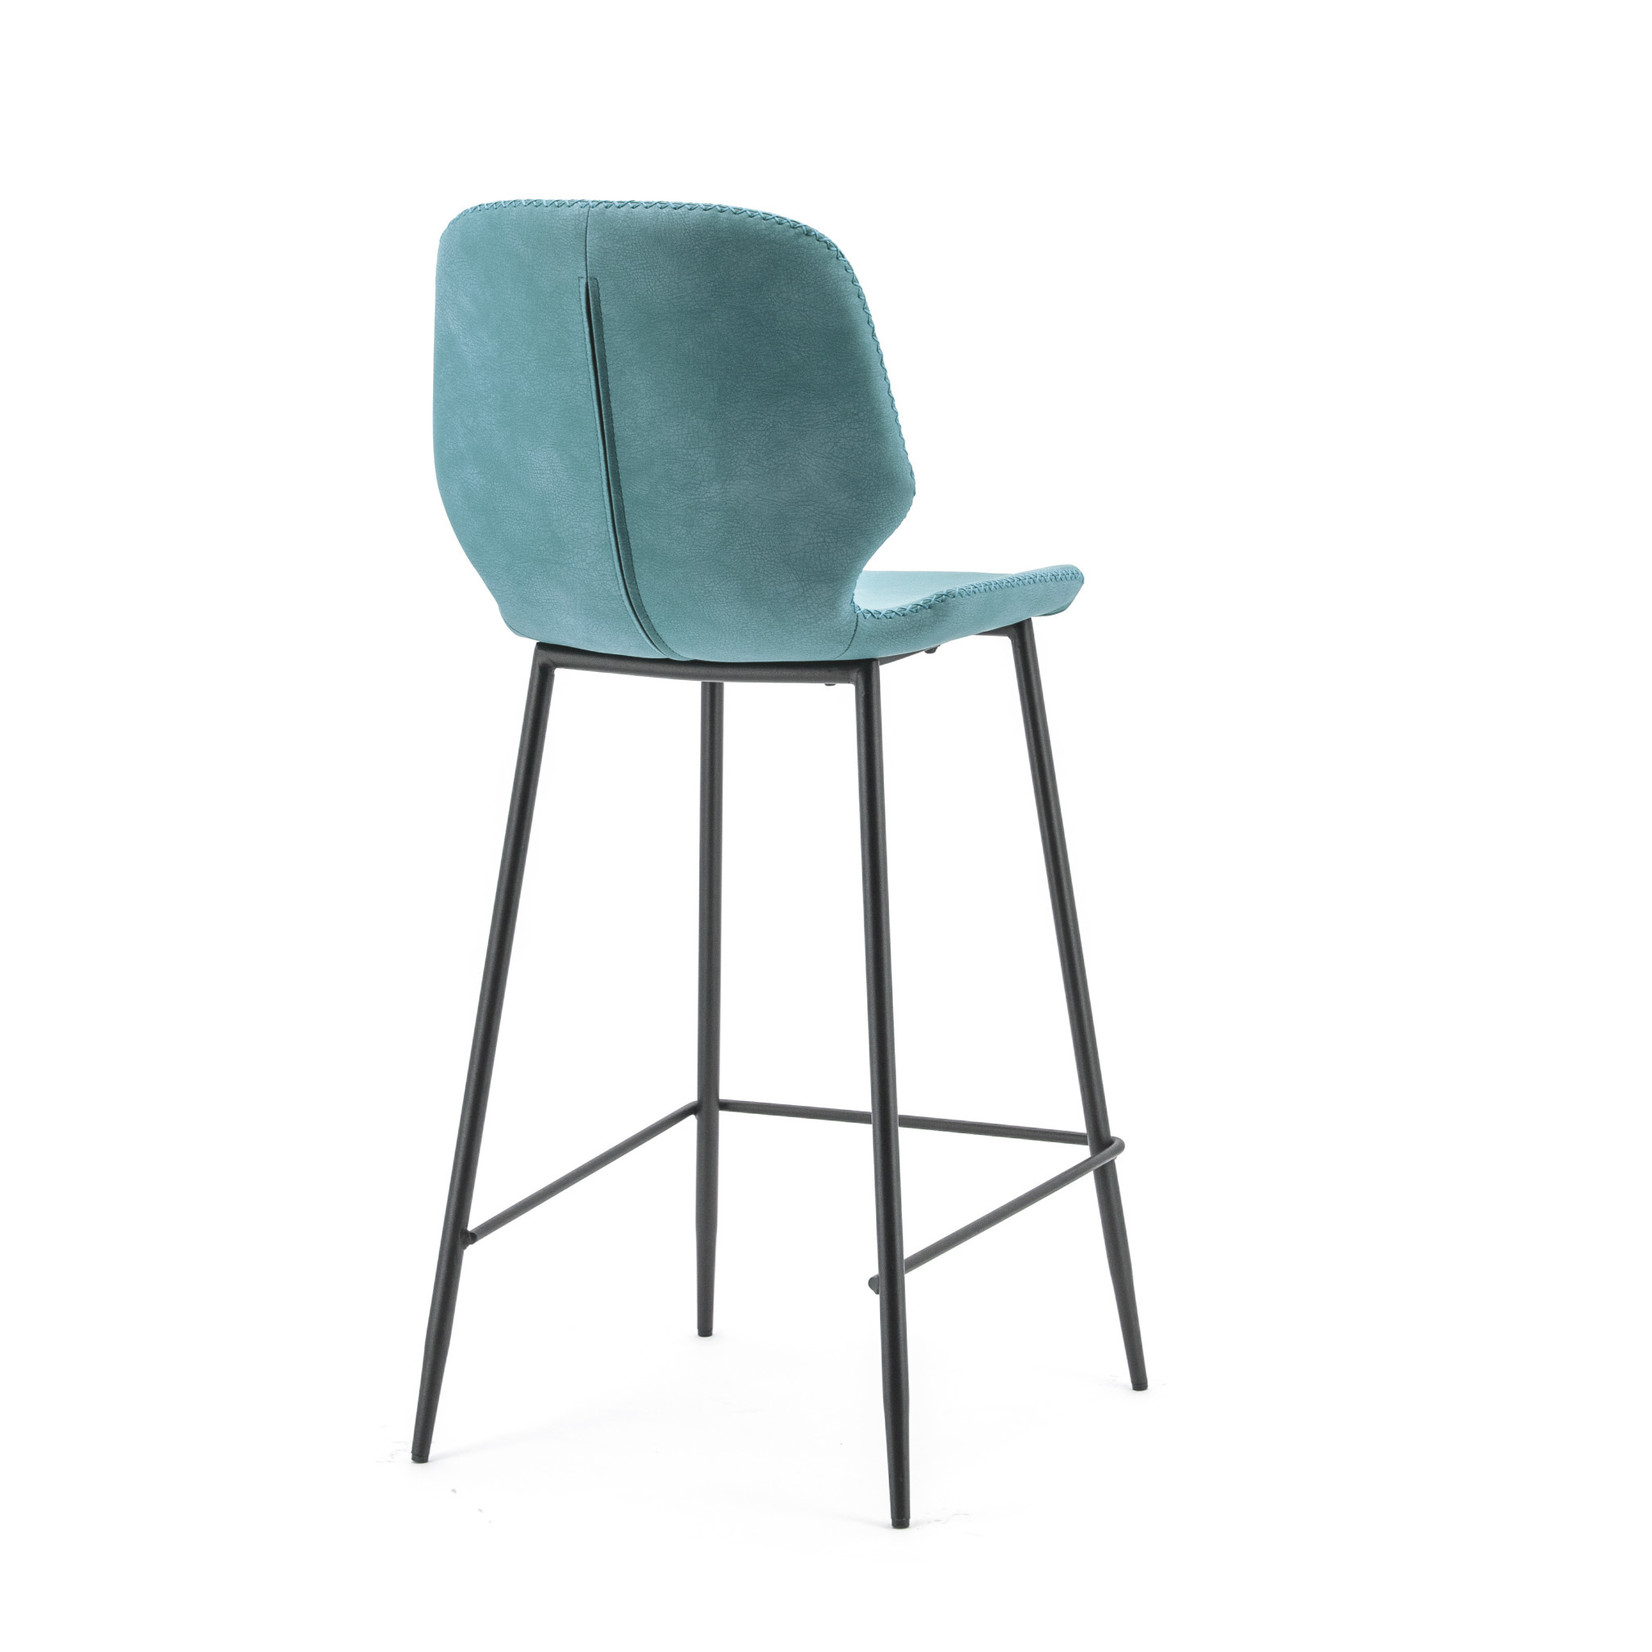 By Boo By Boo Barchair Seashell high - blue